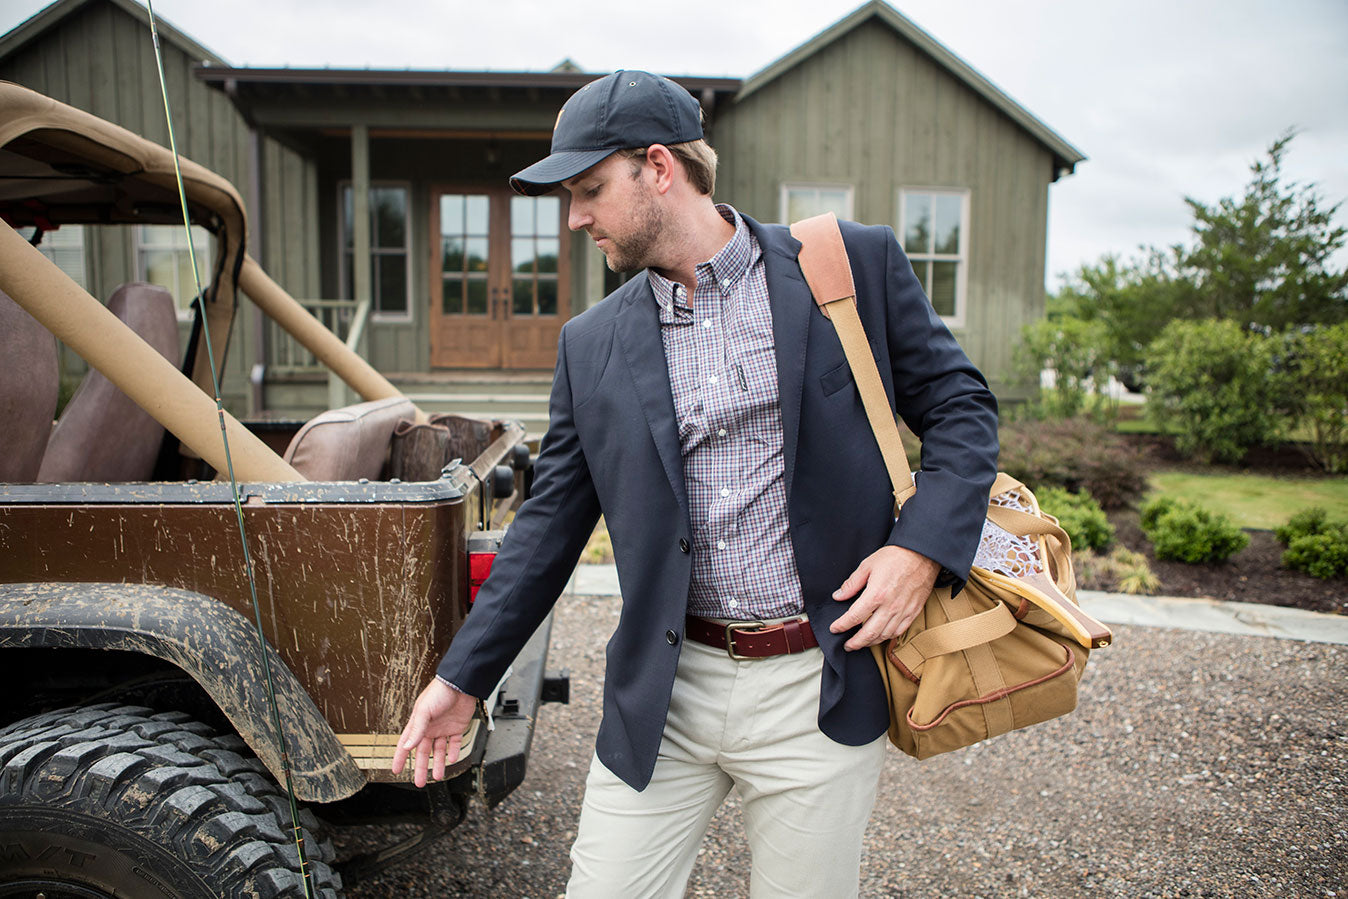 The Hunters Shirt, Bennett with Pocket | The Sportsmans Blazer | Premium Waxed Cotton Hat, Navy, Signature Plaid | The Last Belt You'll Ever Buy, Latigo | Expedition Duffel Bag, Signature Leather/Signature Duck